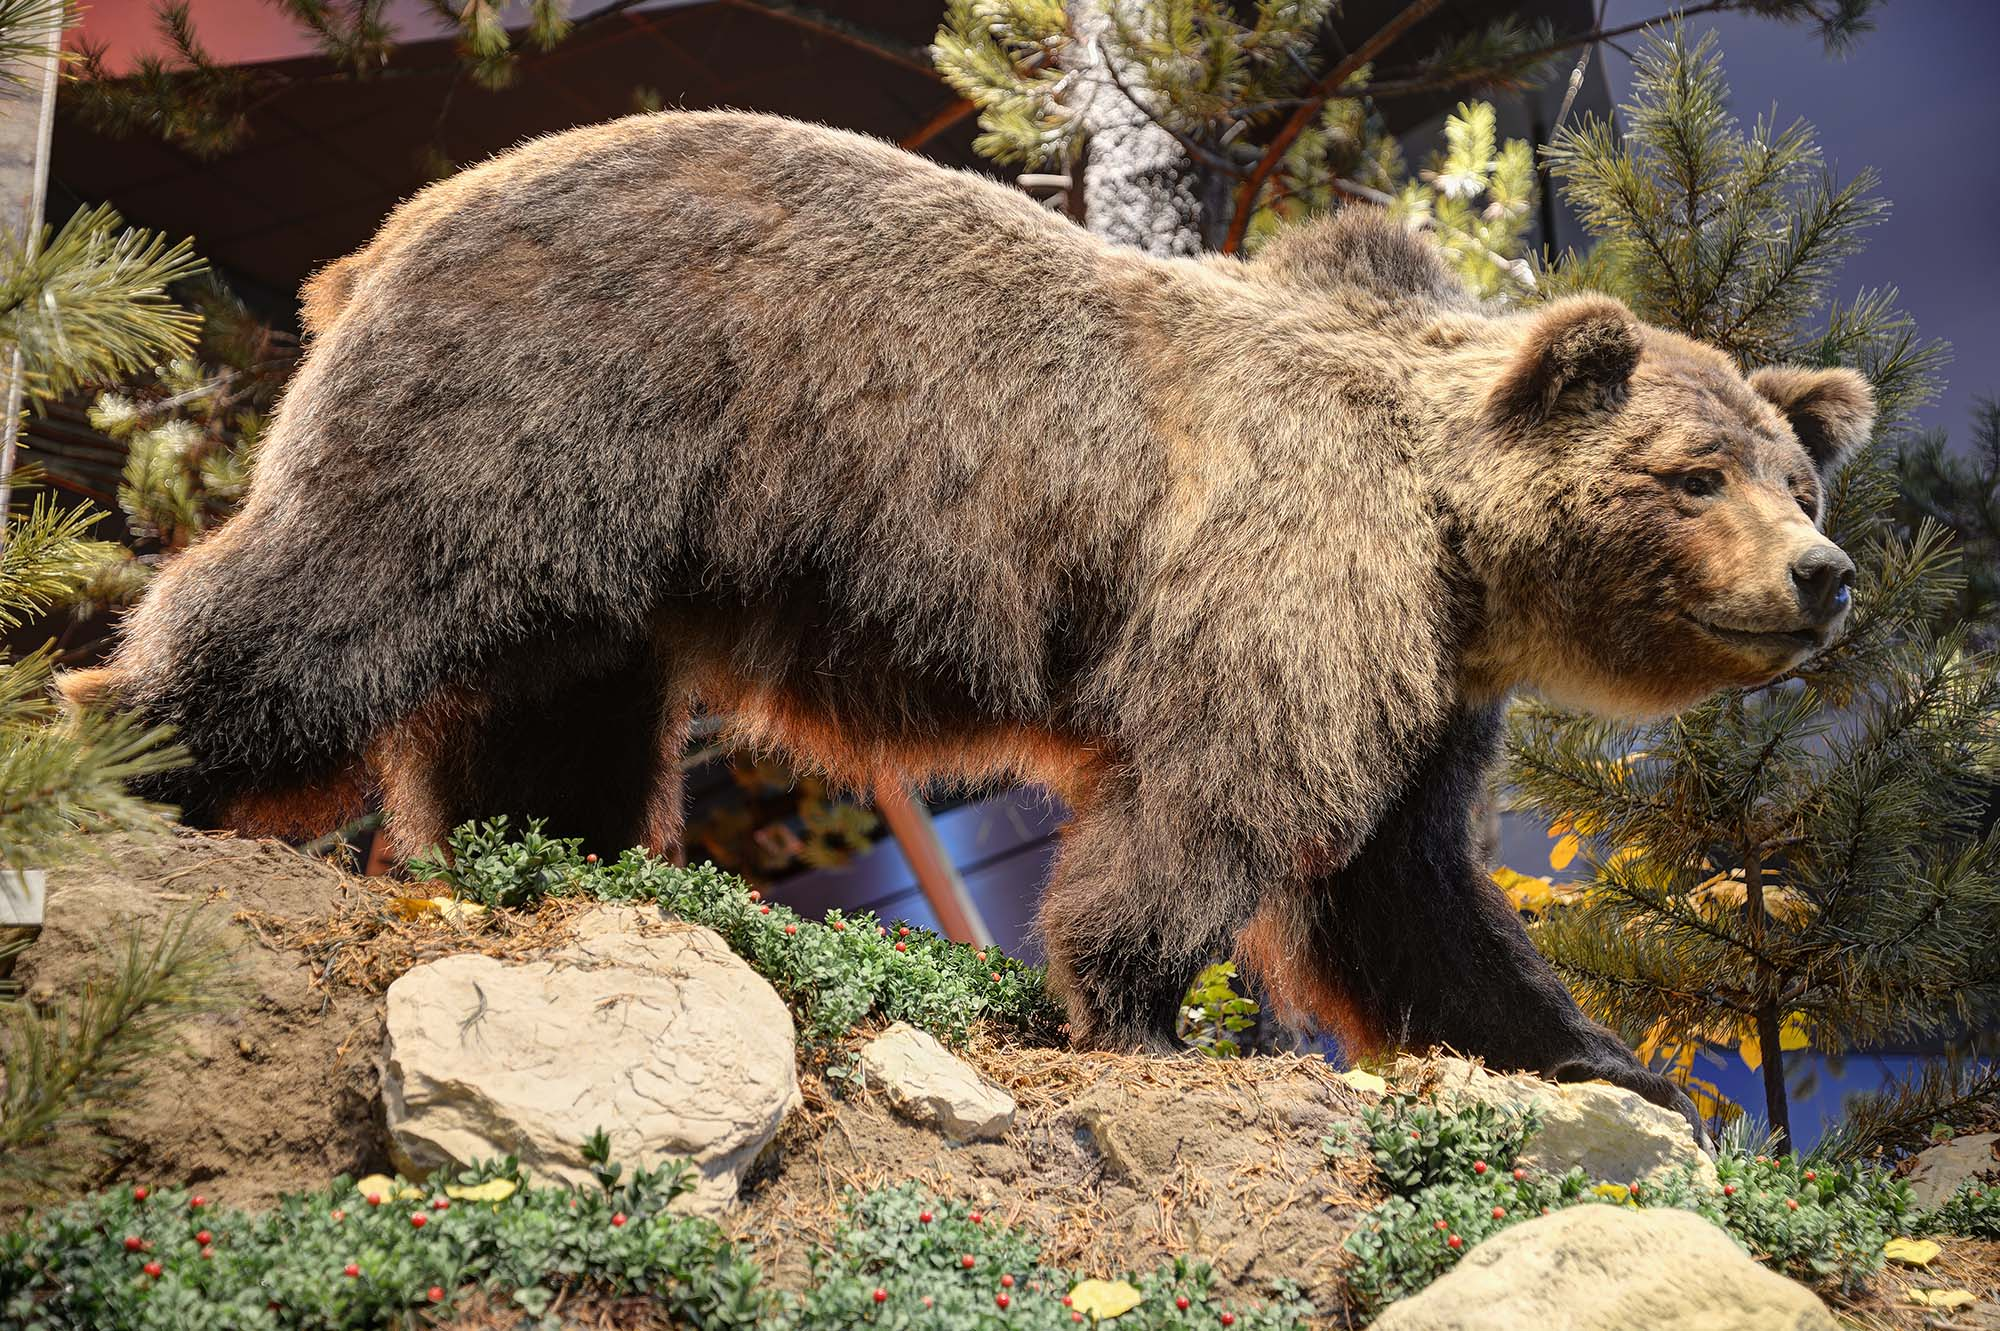 Bear 104 in the Draper Natural History Museum